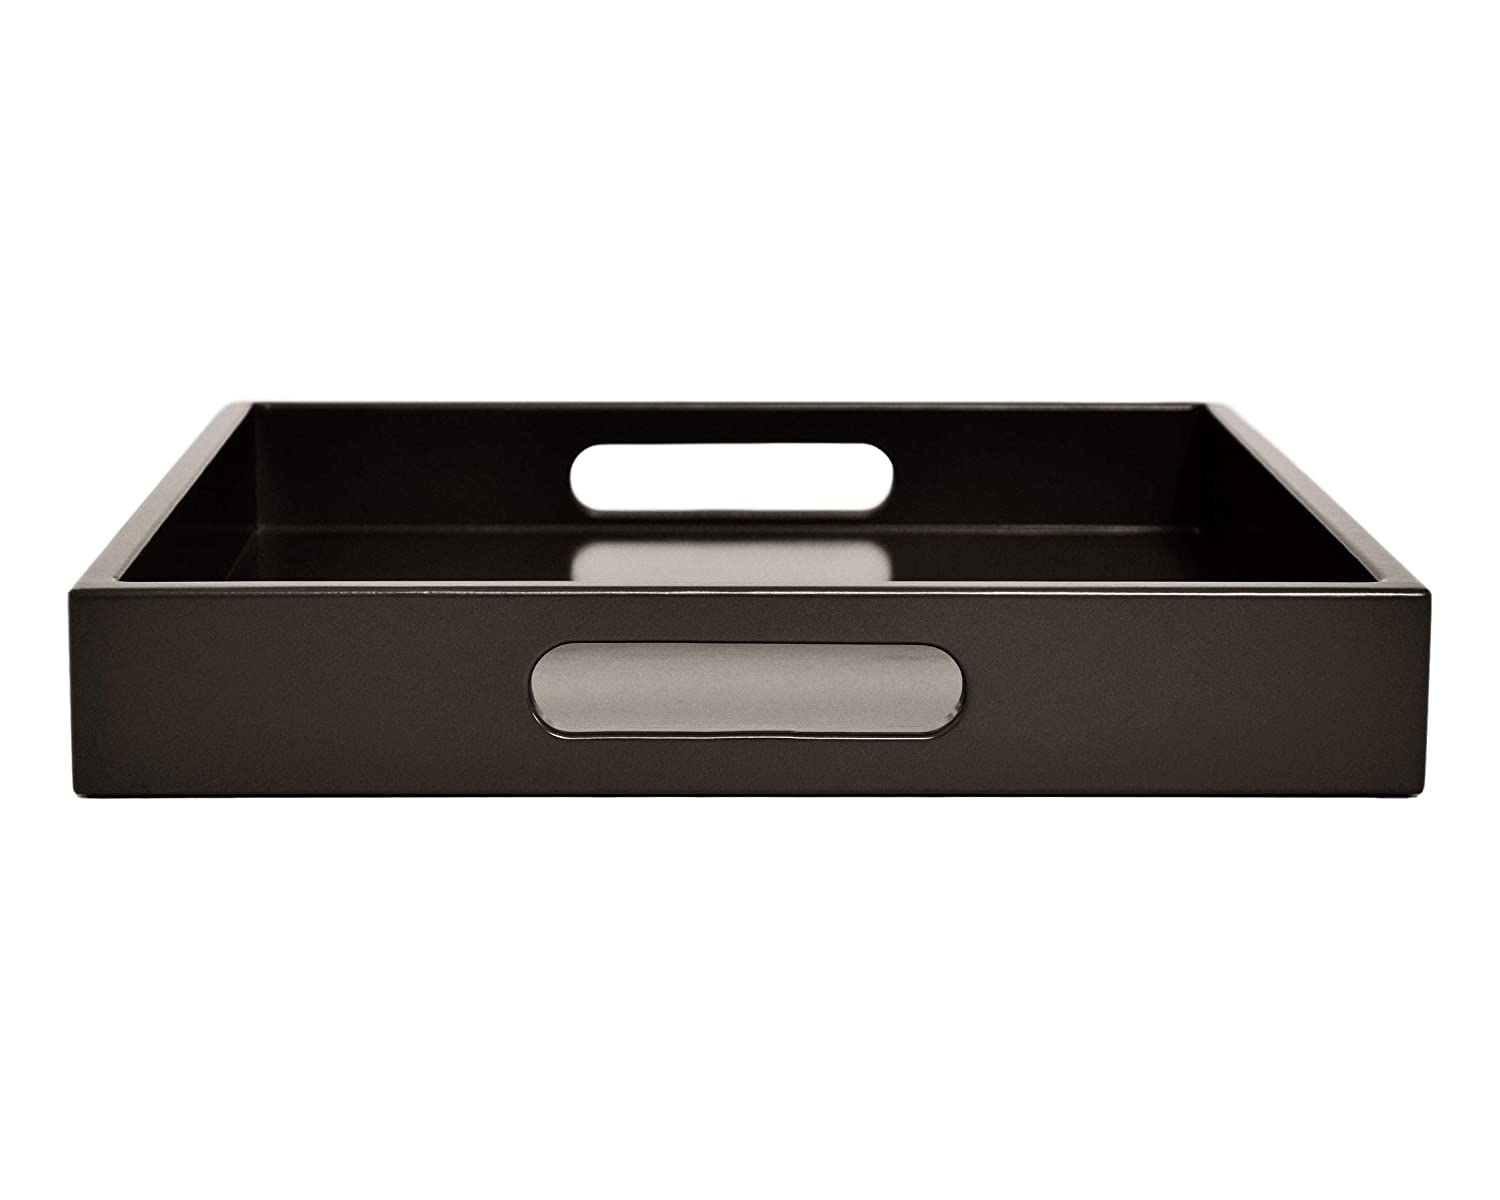 Large Dark Brown Tray with Handles - Many Sizes